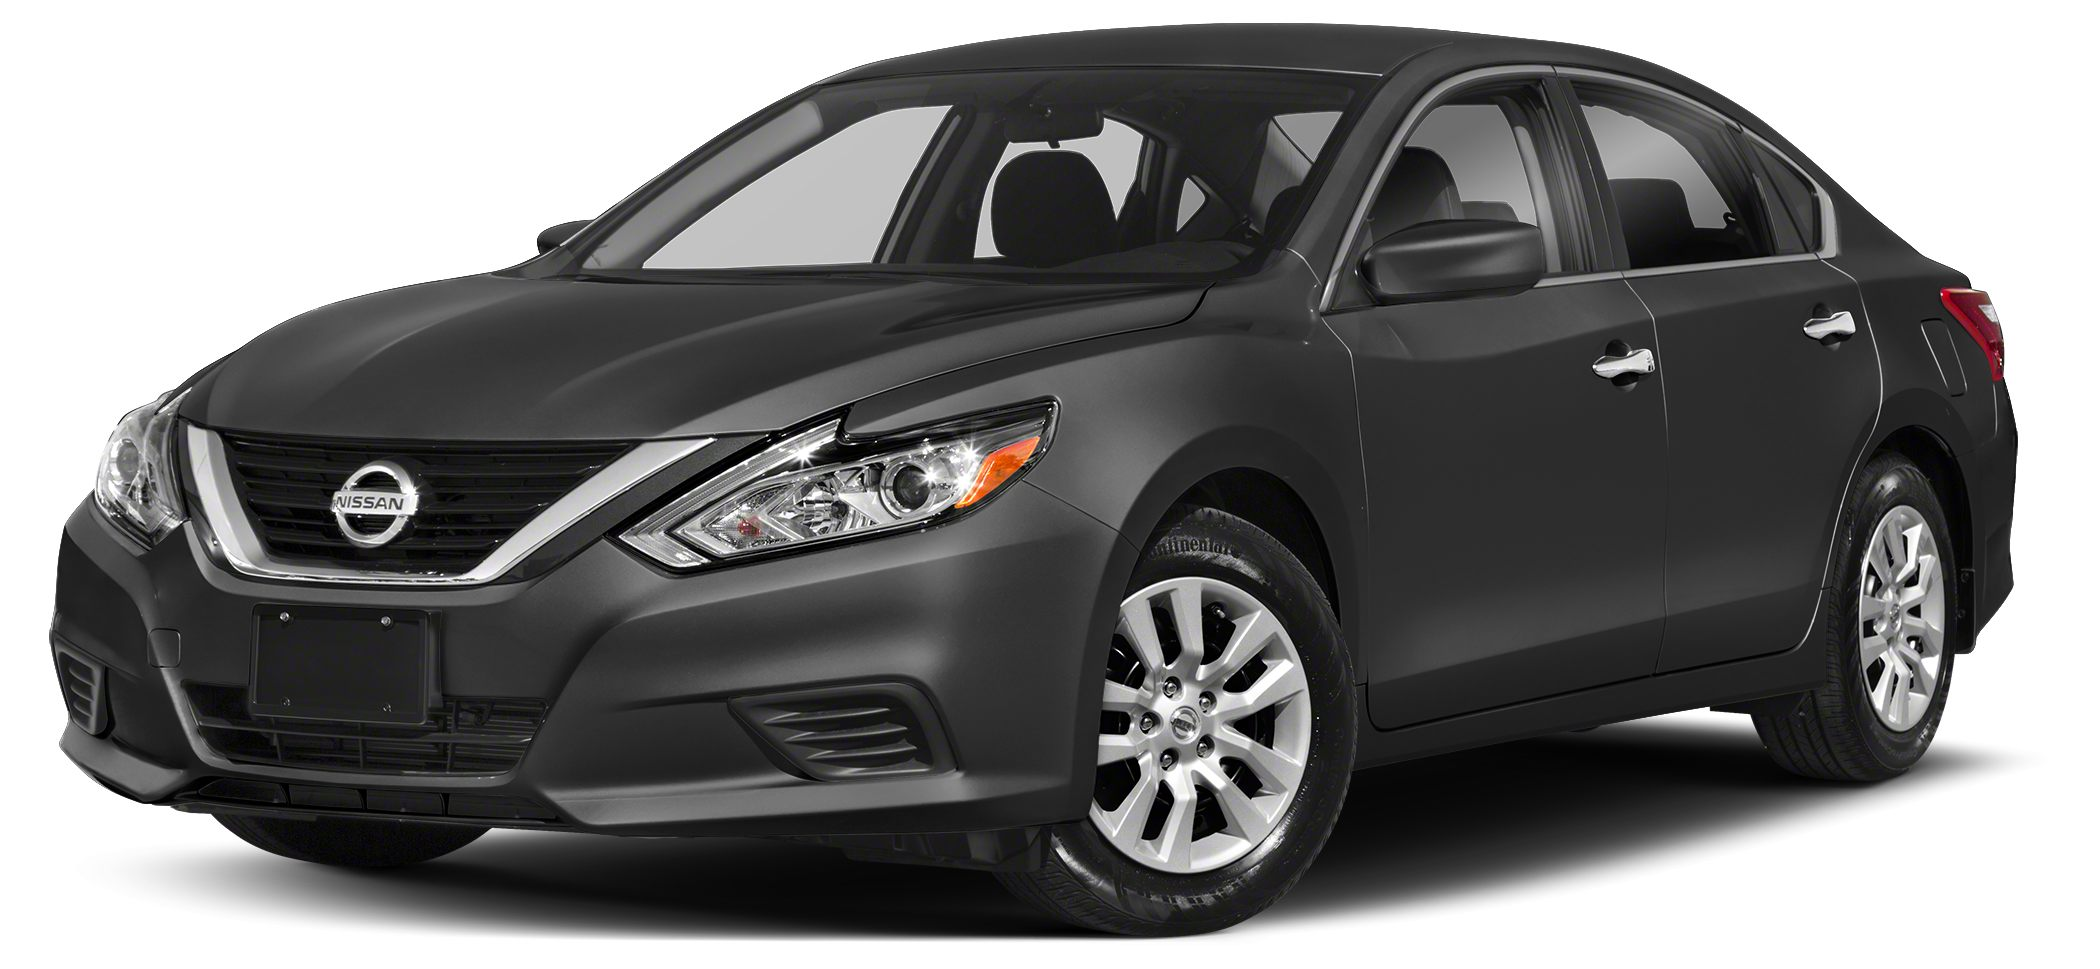 2018 Nissan Altima 25 S The premium exterior design of the 2018 Nissan Altima from the powerful